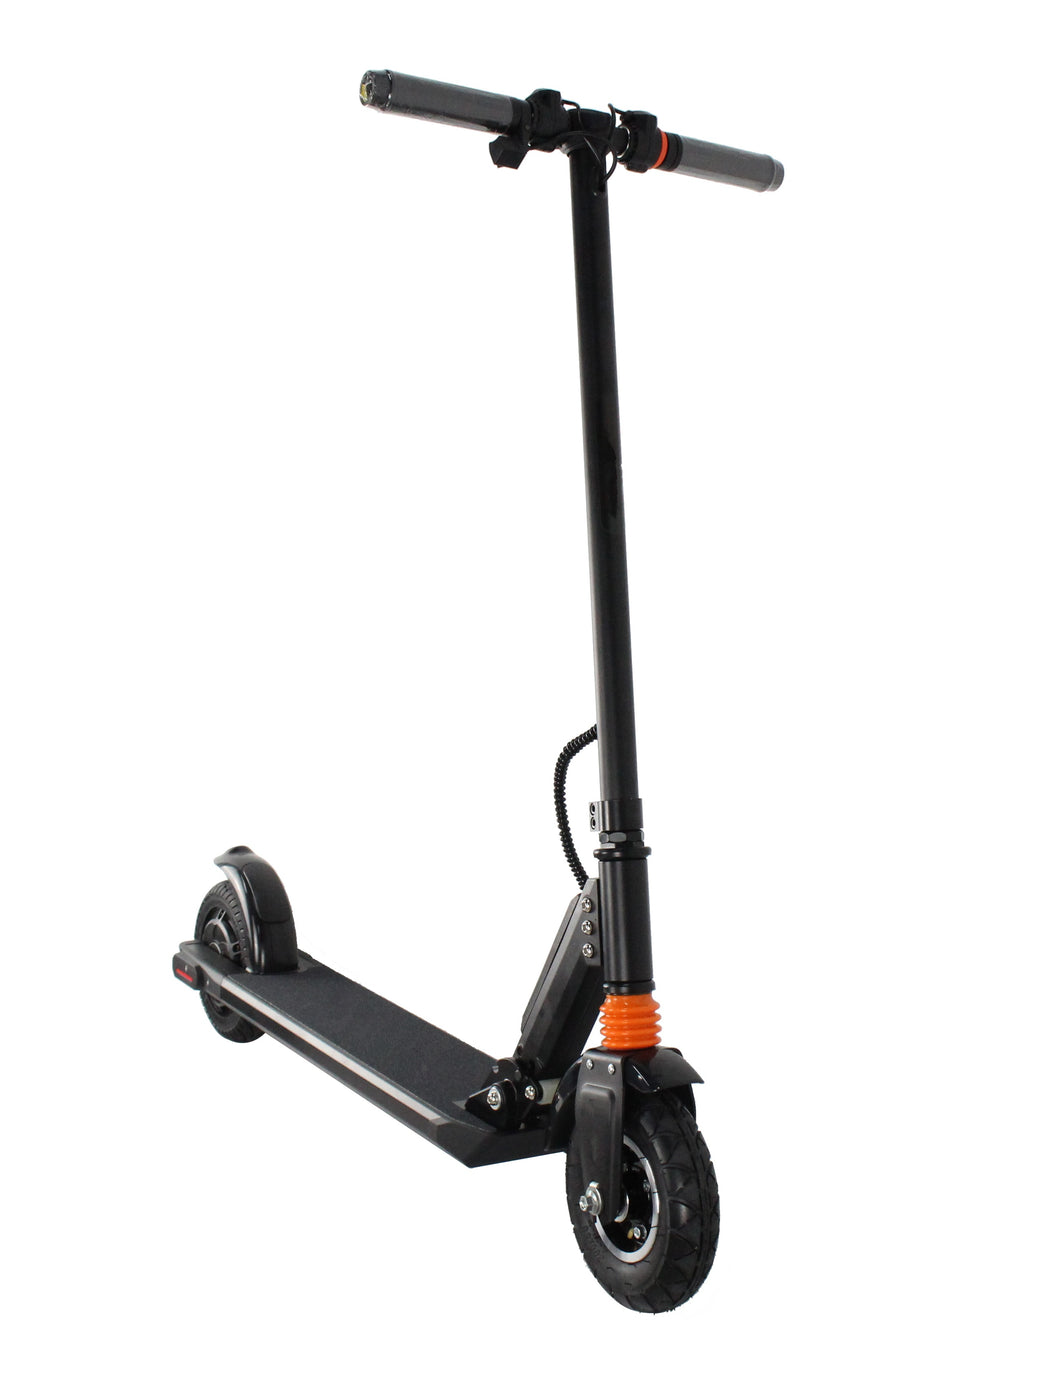 BELIZE Buzz 250 (Electric Scooter)